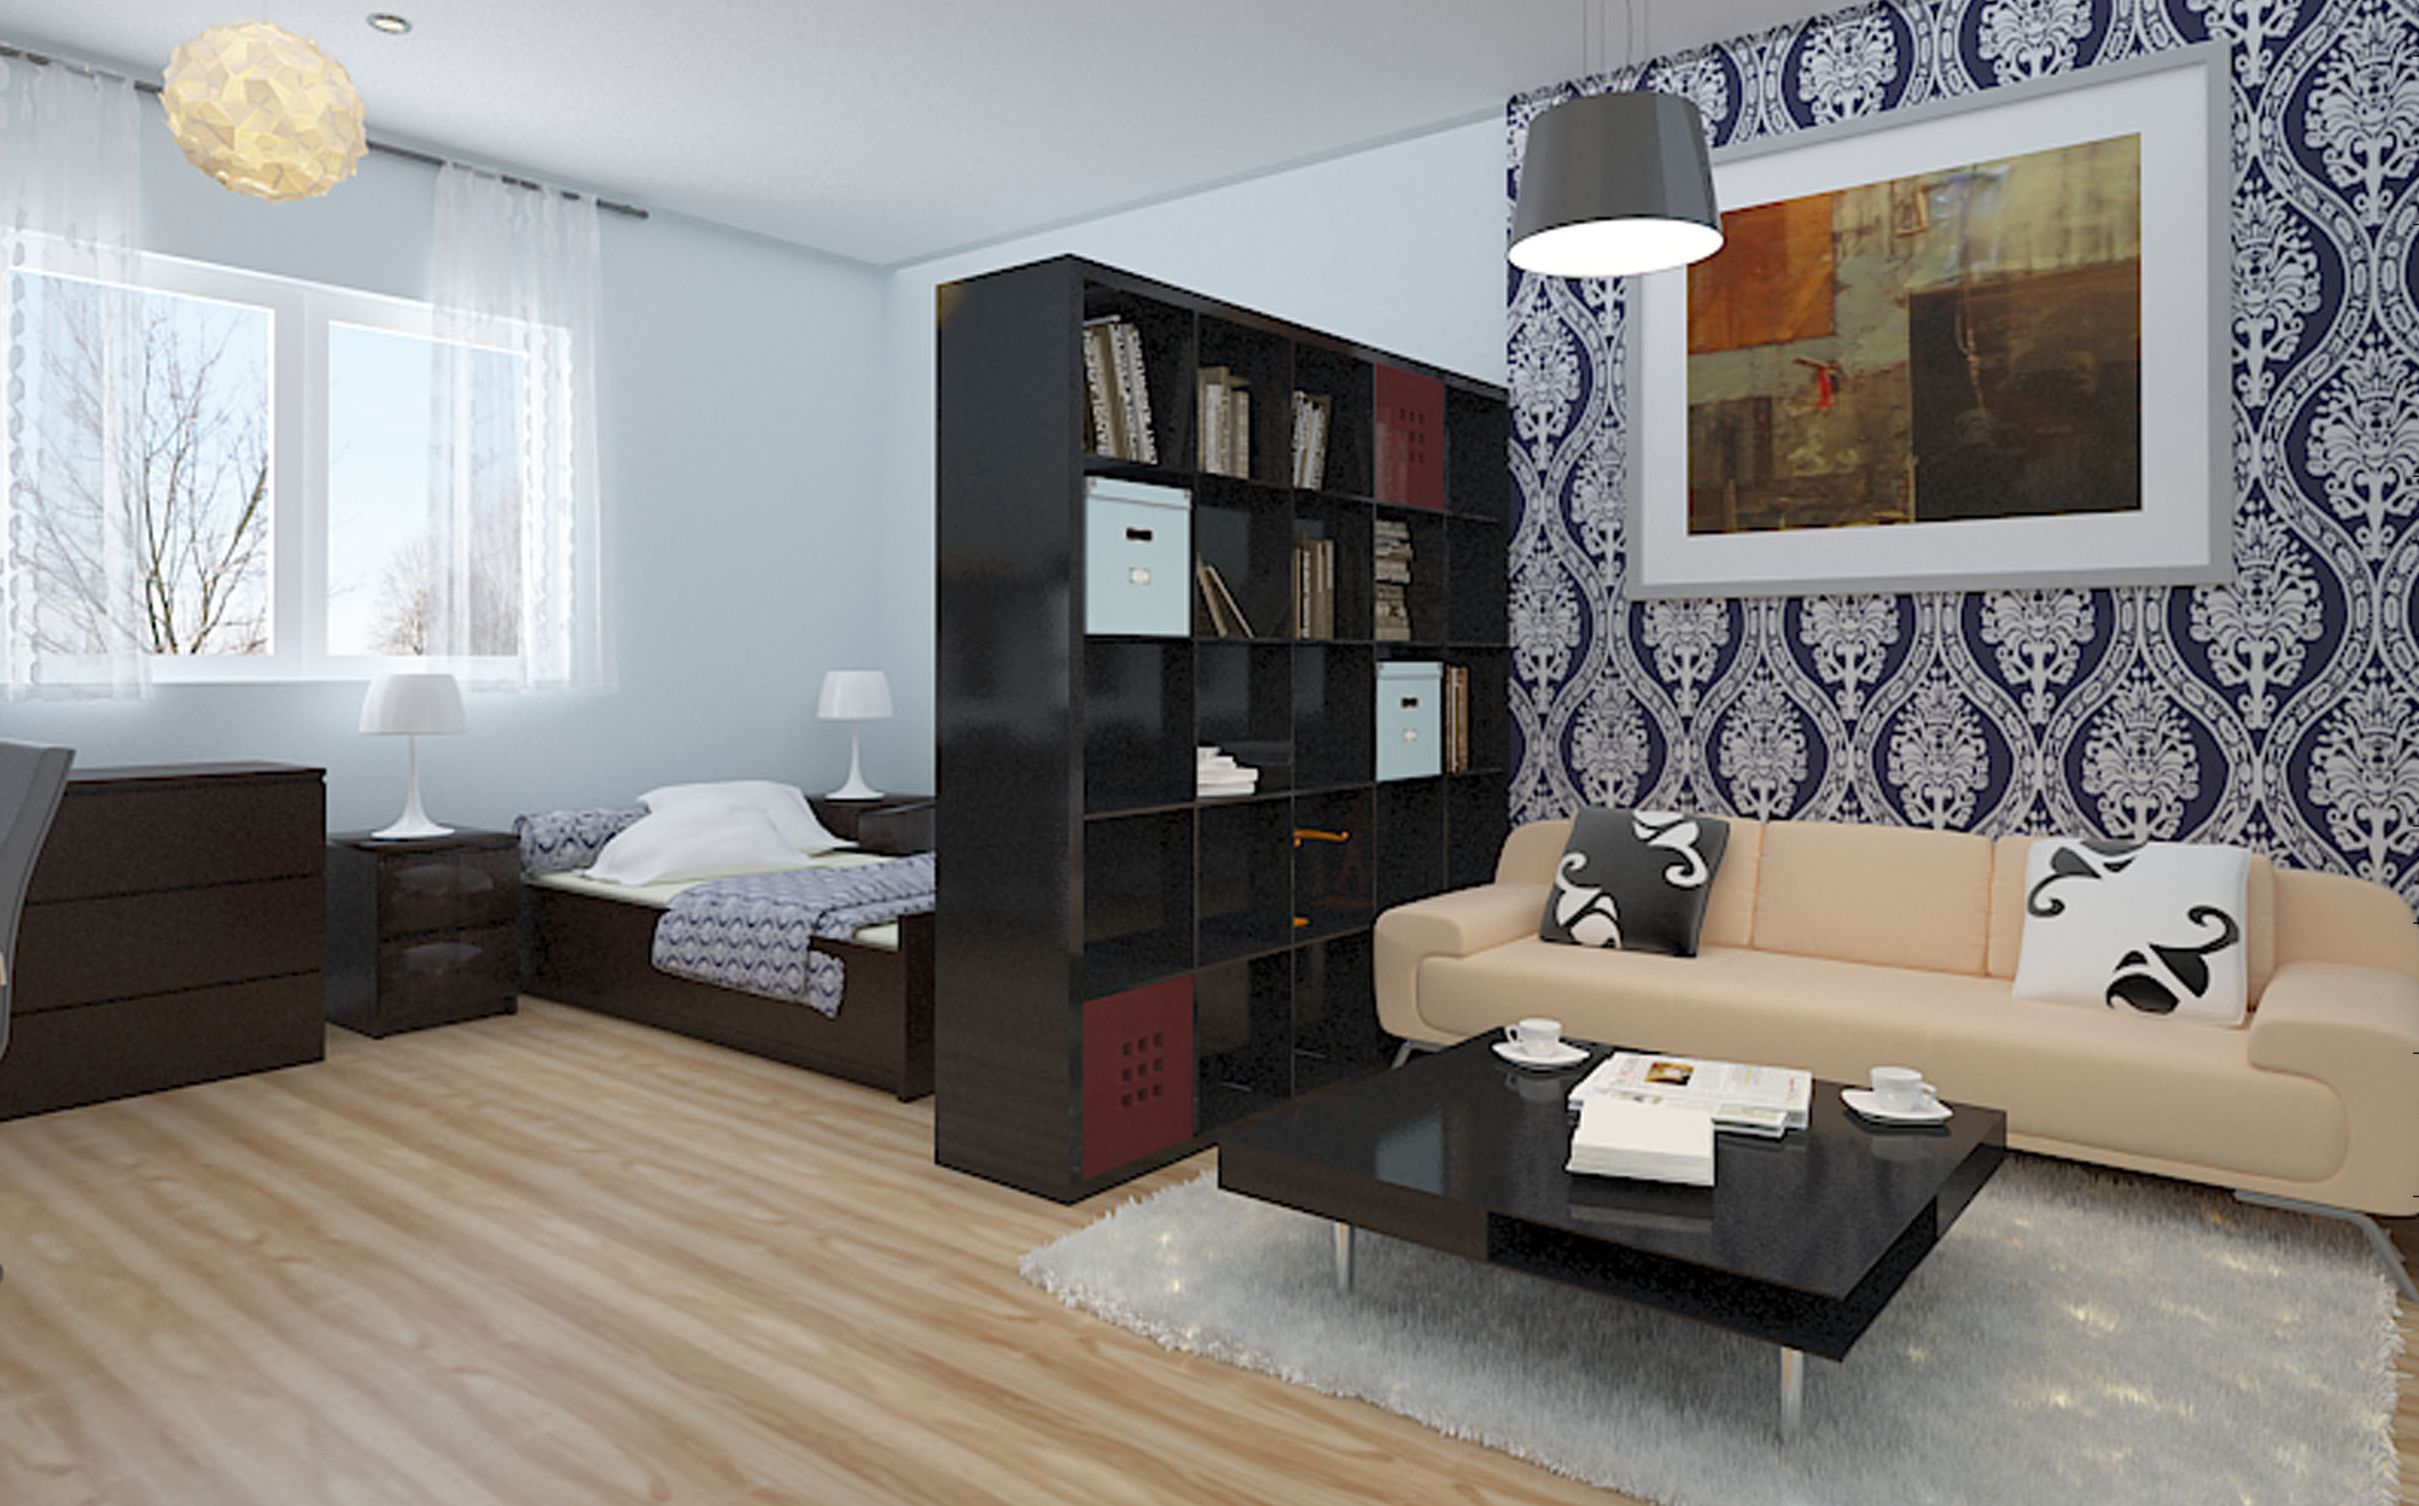 hd resolution and design apartments furniture huzname with modern for apartment amazing together cupboard interior living astonishing room